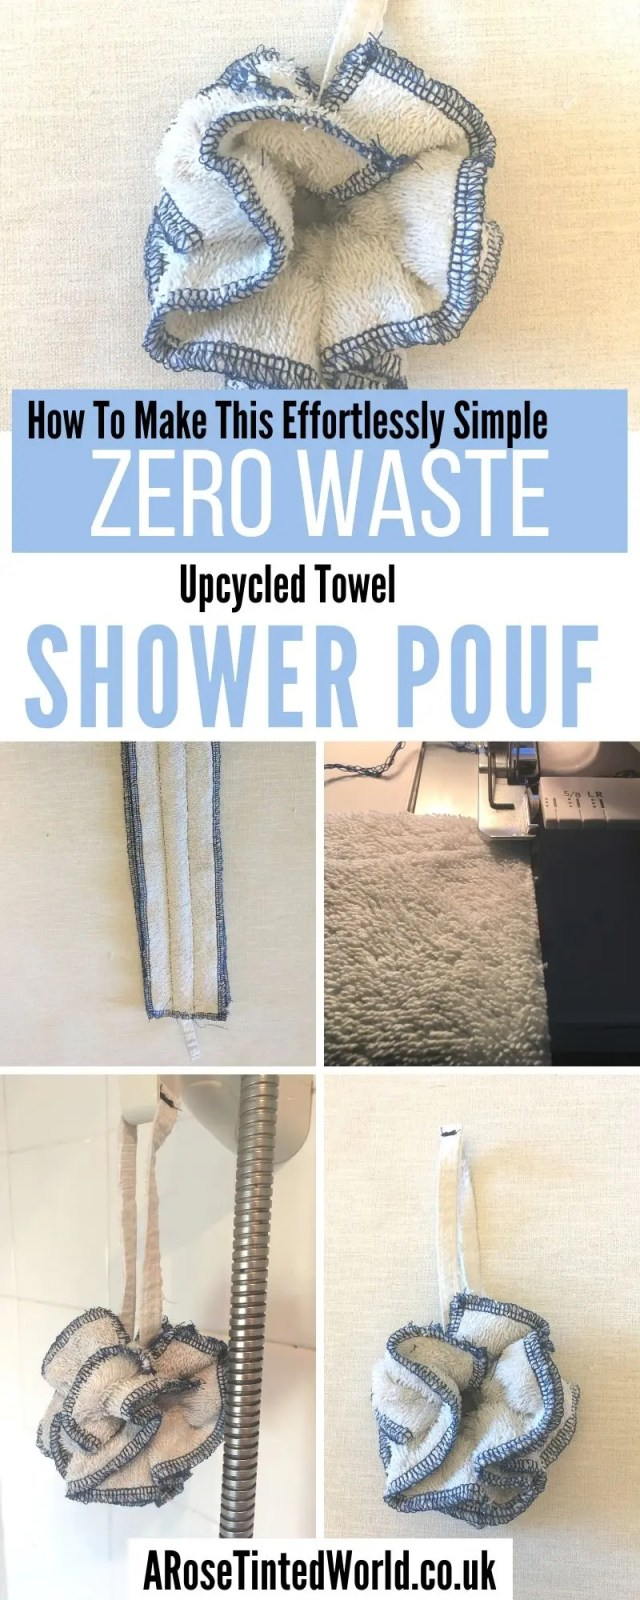 How to make a shower pouf from an old upcycled towel. Instead of a plastic shower scrubber, use a sustainable, zero waste and eco friendly alternative bath puff. See my step by step DIY sewing tutorial here. #sewing #showerpouf #showerpuff #unsponges #bathroomswaps #upcycling #sustainable #zerowaste